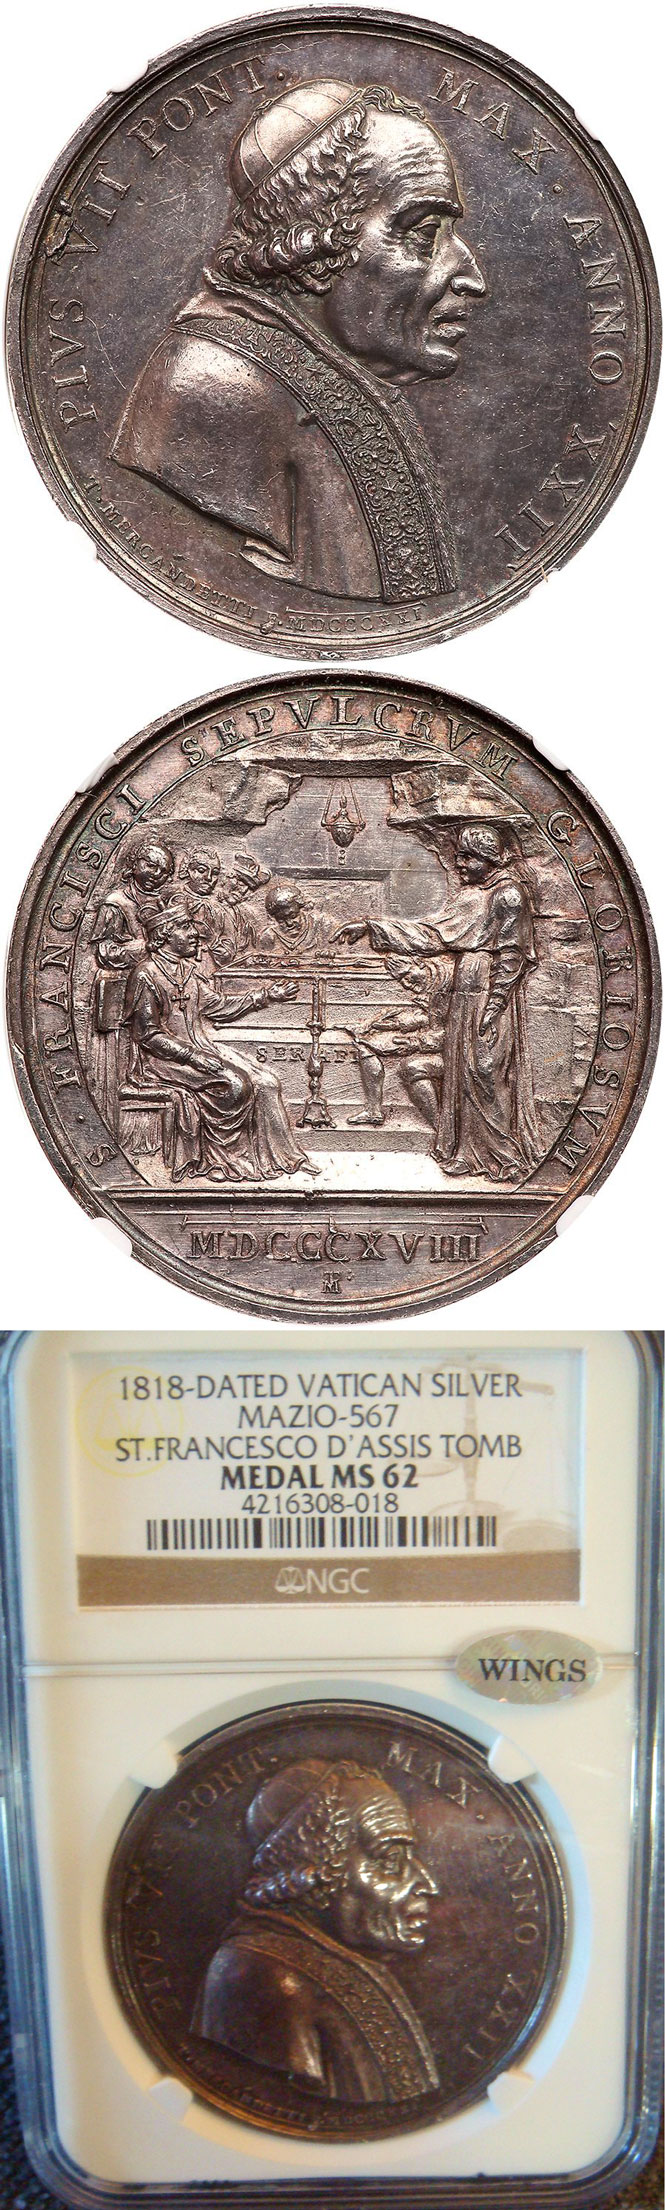 Pius VII (1800-23) Tomb St Francis Assisi Ag Medal Photo